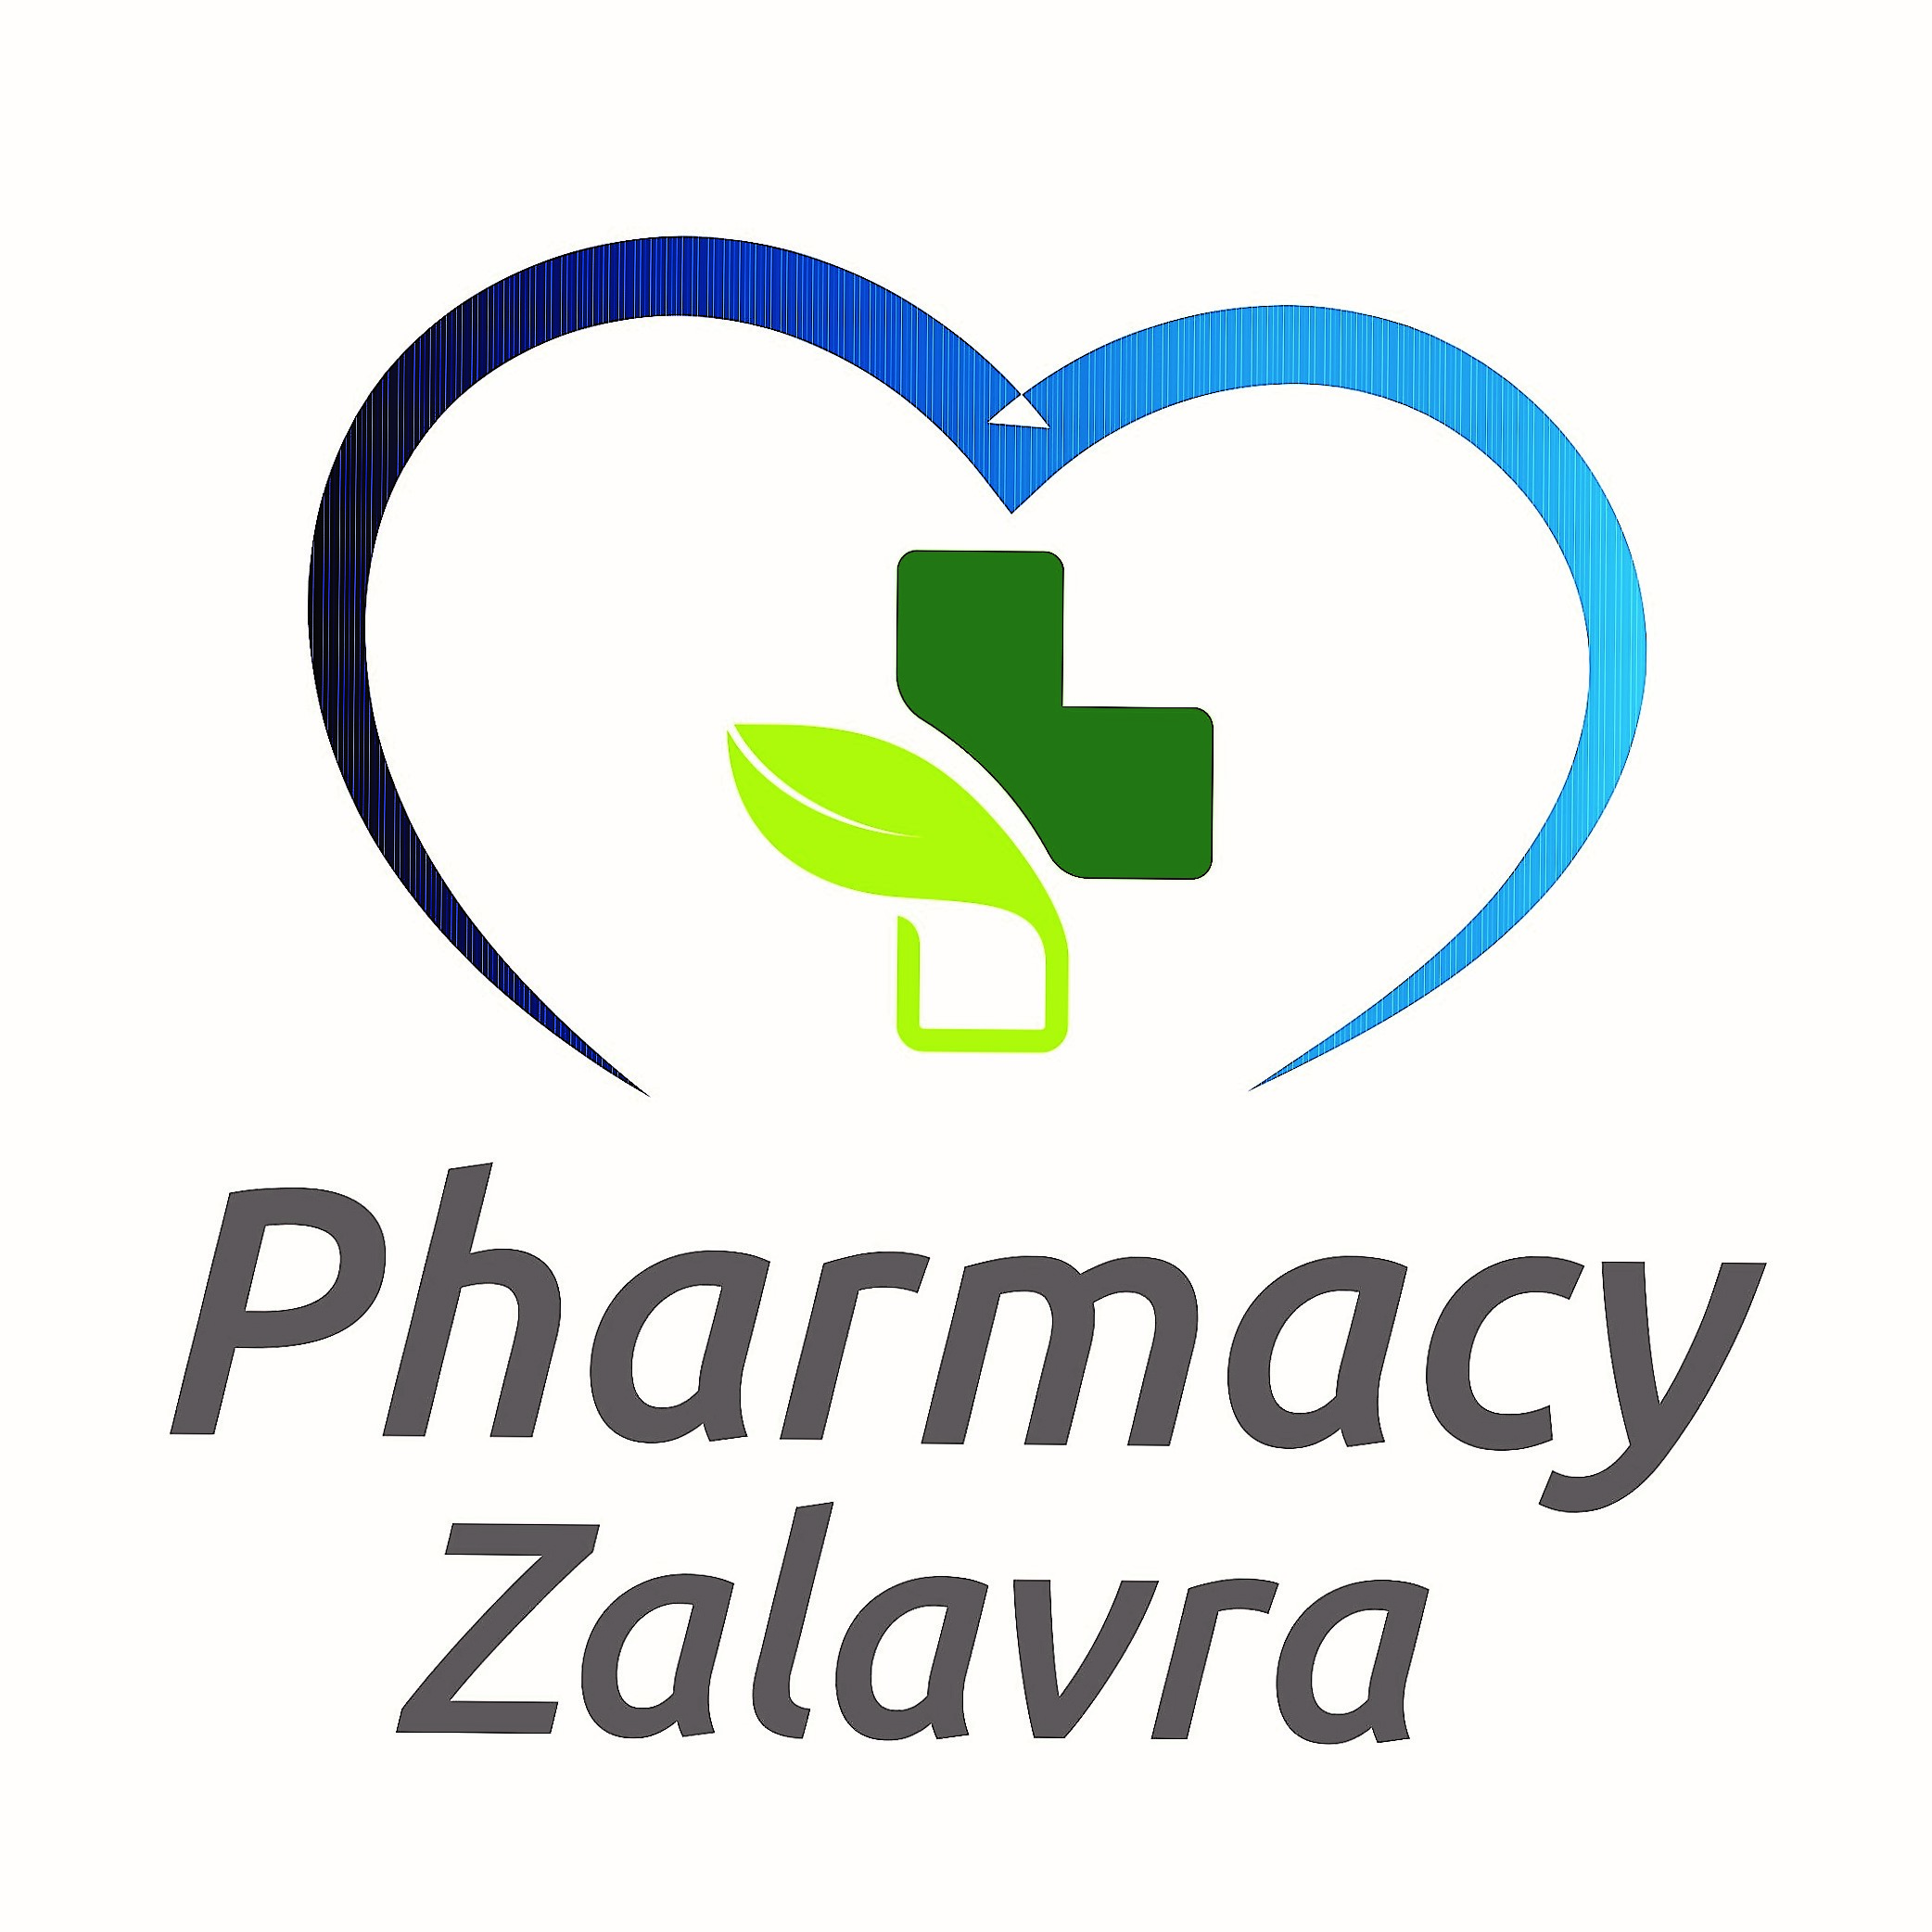 Pharmacy Zalavra at the foothills of Meteora (Kalambaka)